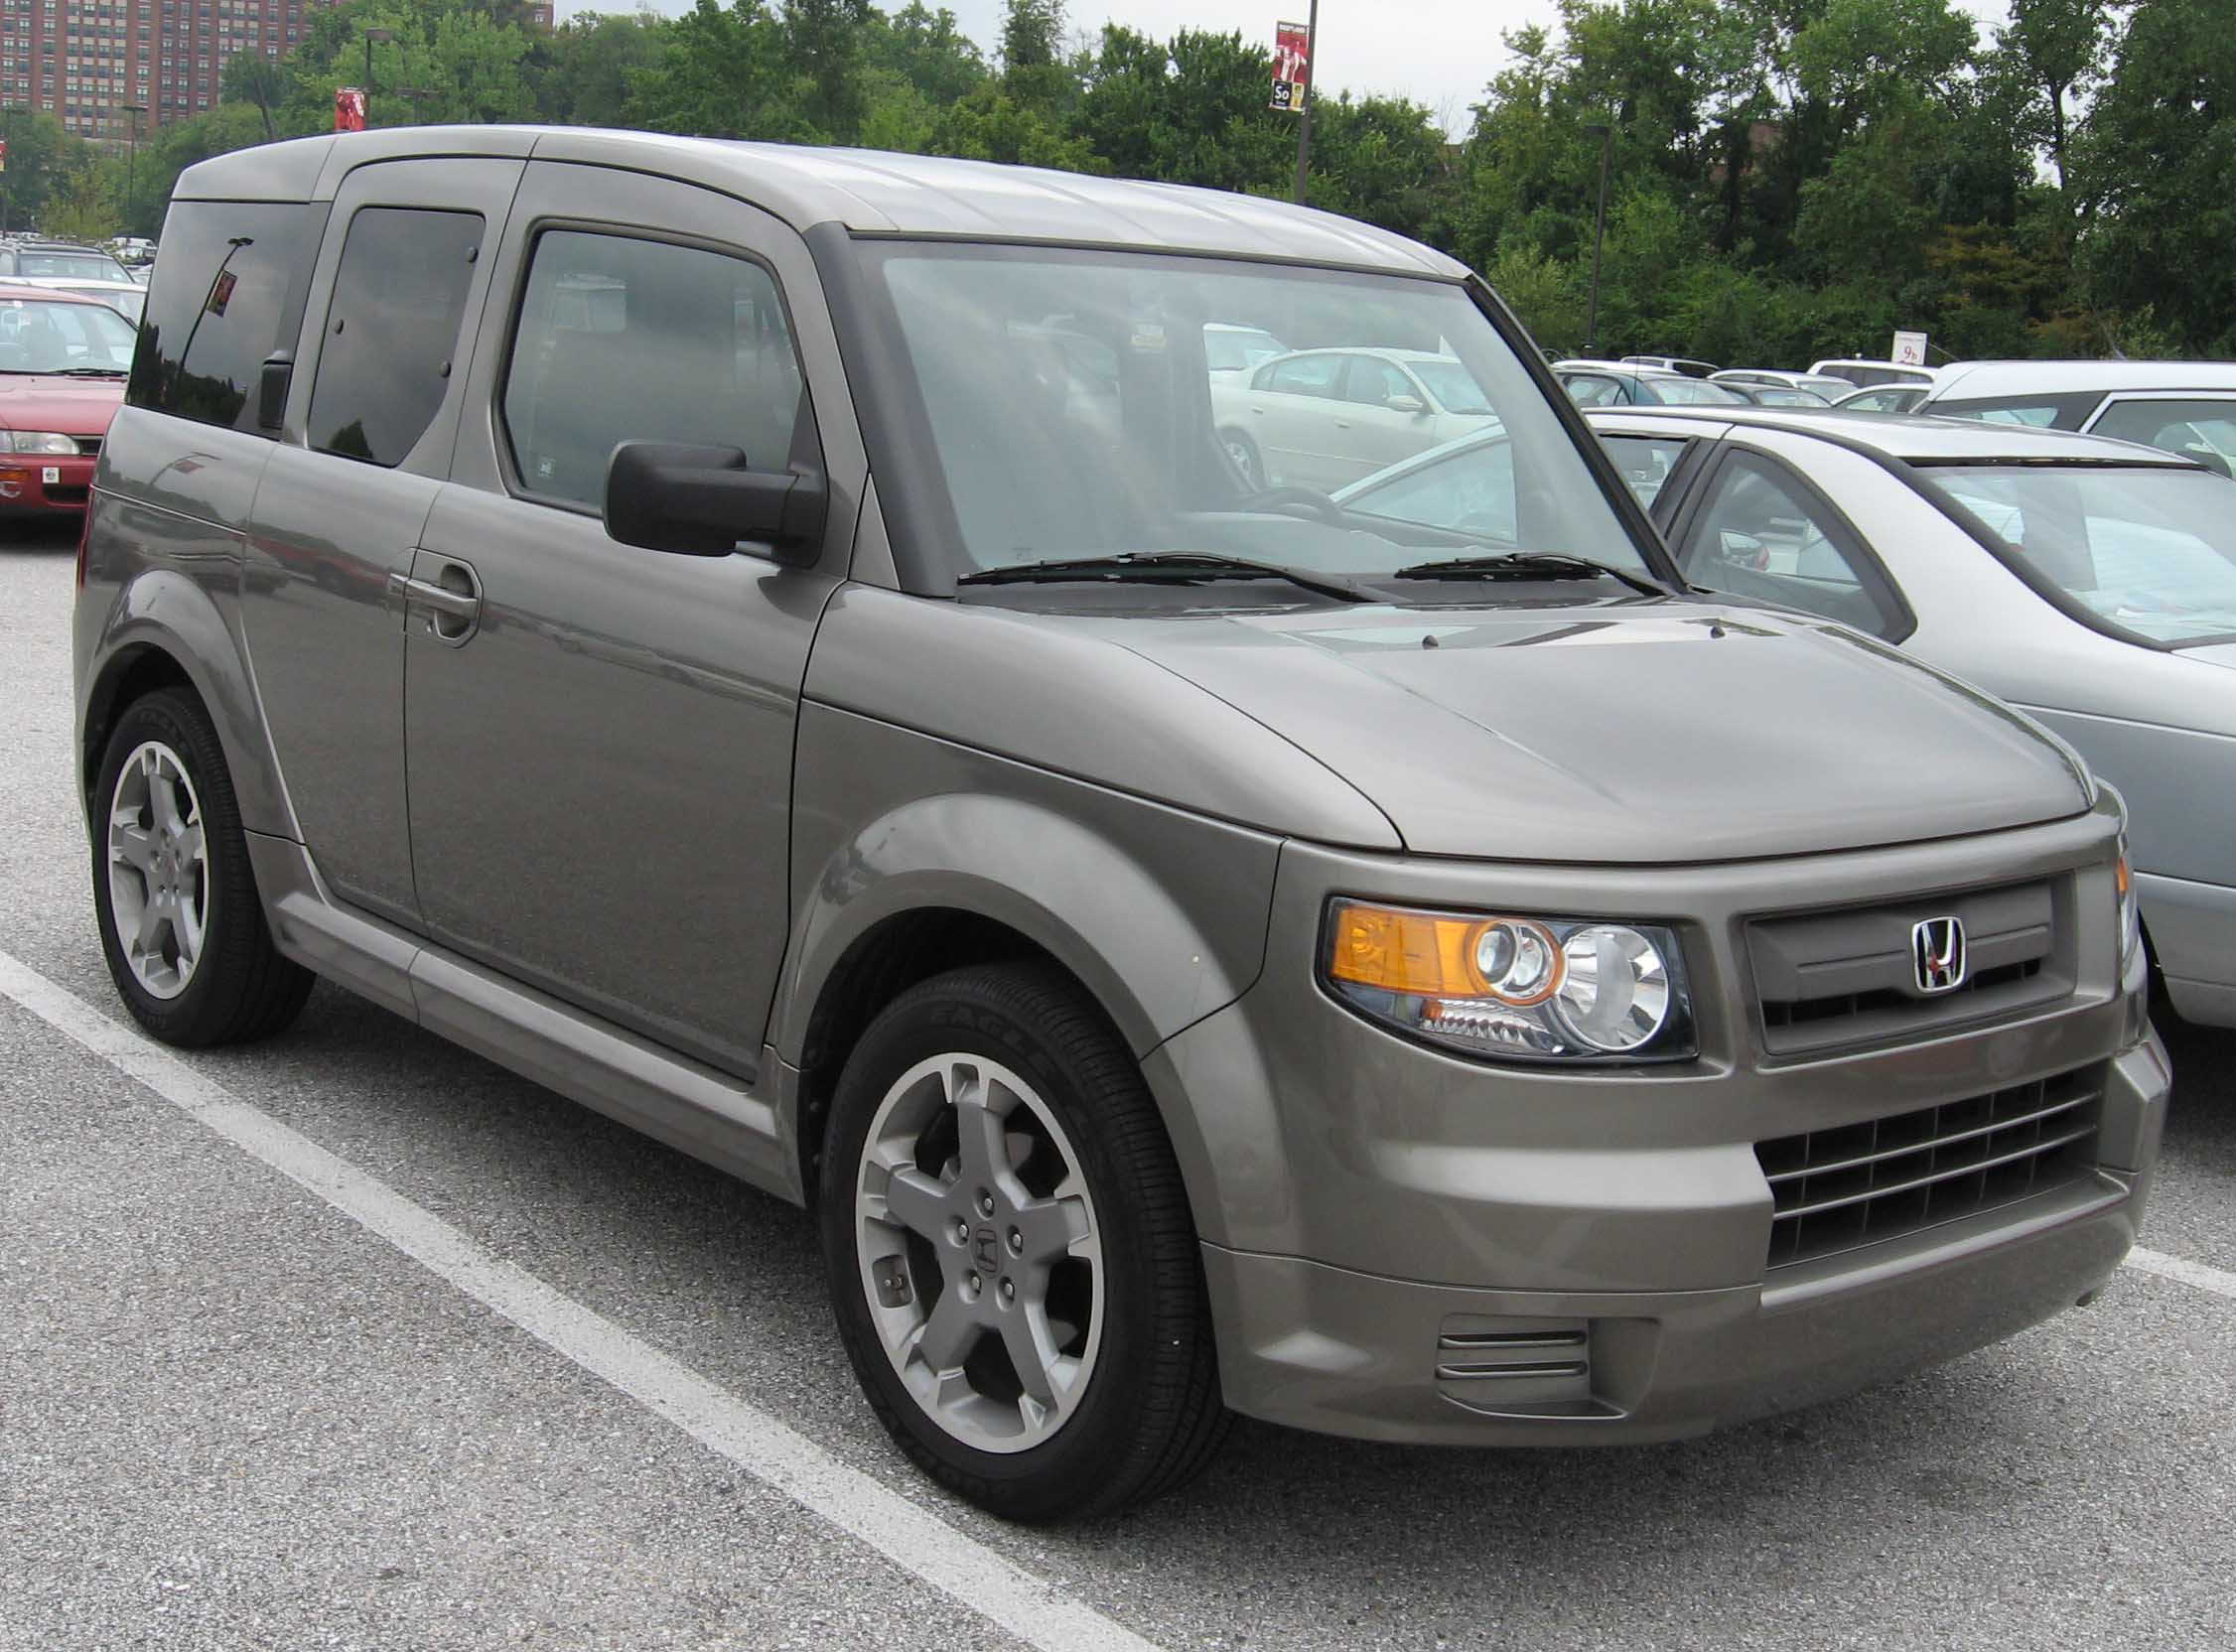 honda element a chick 39 s car tacoma world forums. Black Bedroom Furniture Sets. Home Design Ideas